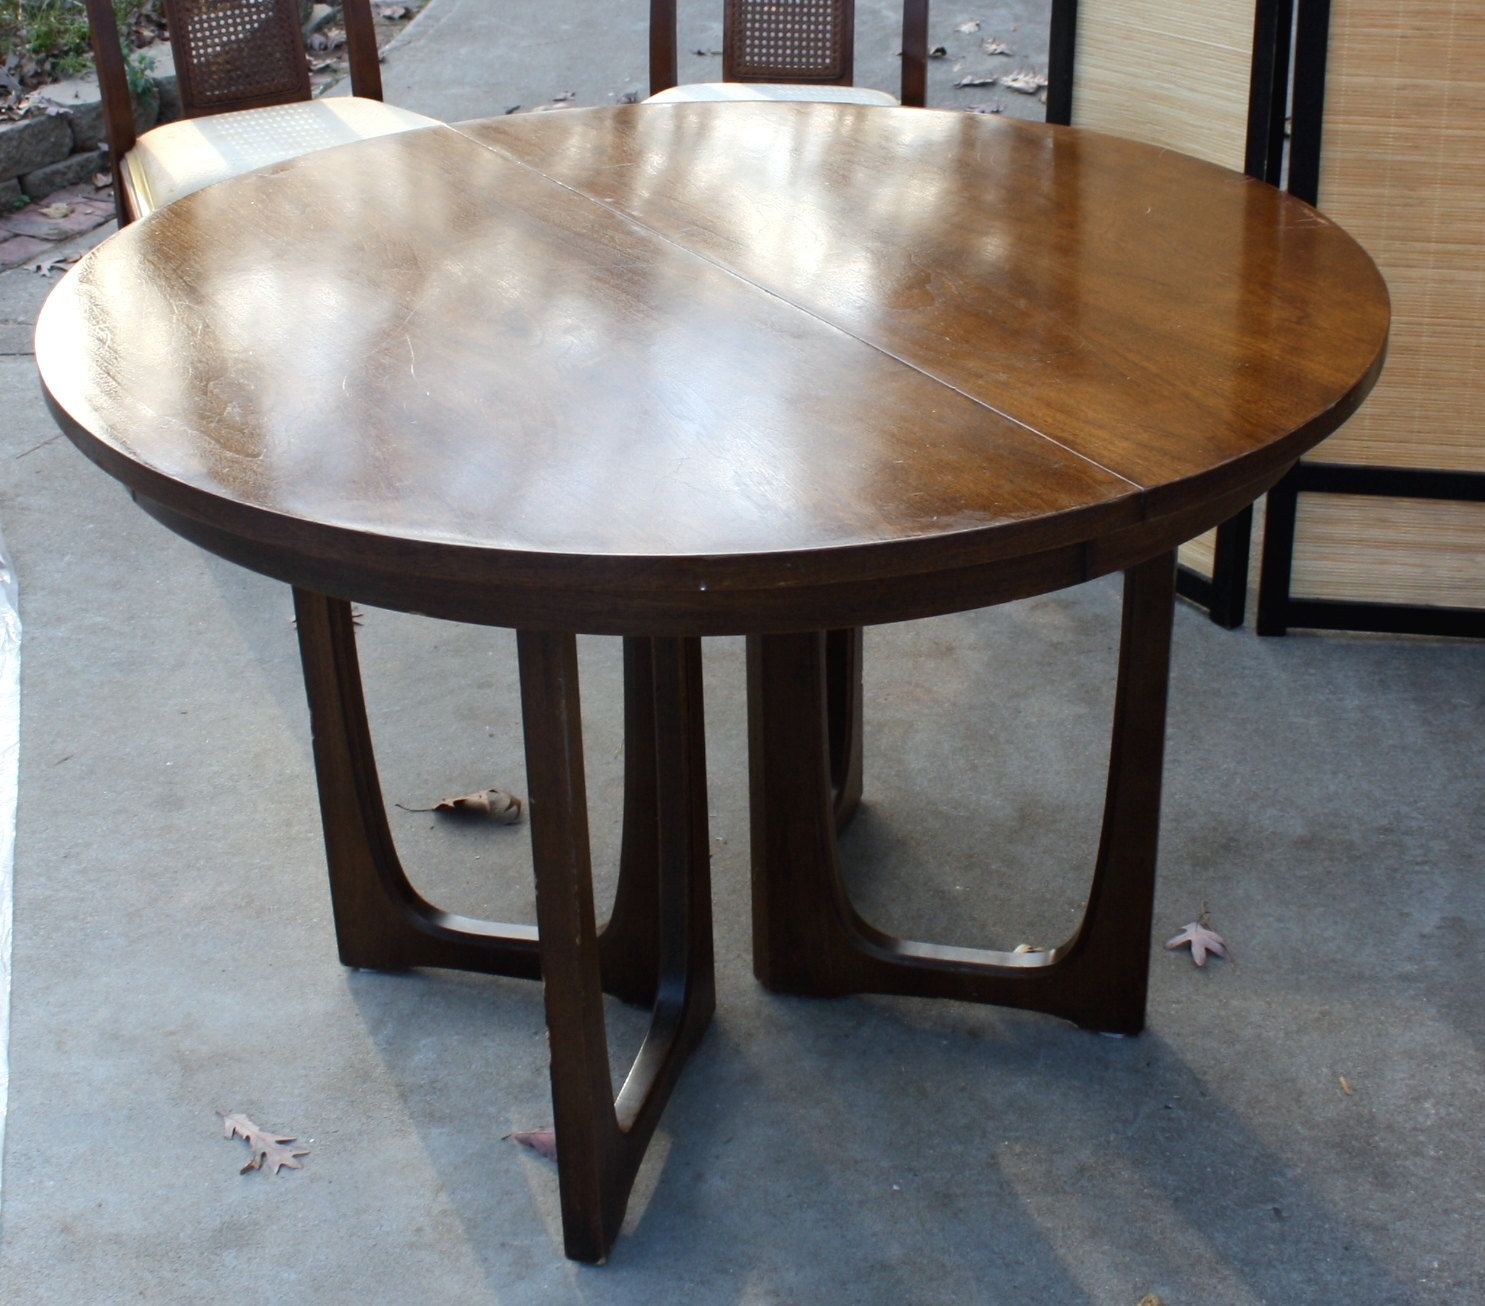 Sold Round Oval Danish Style Broyhill Brasilia Like Dining Table 600 00 Via Etsy Dining Table Dining Chairs For Sale Dining Room Table [ 1306 x 1485 Pixel ]